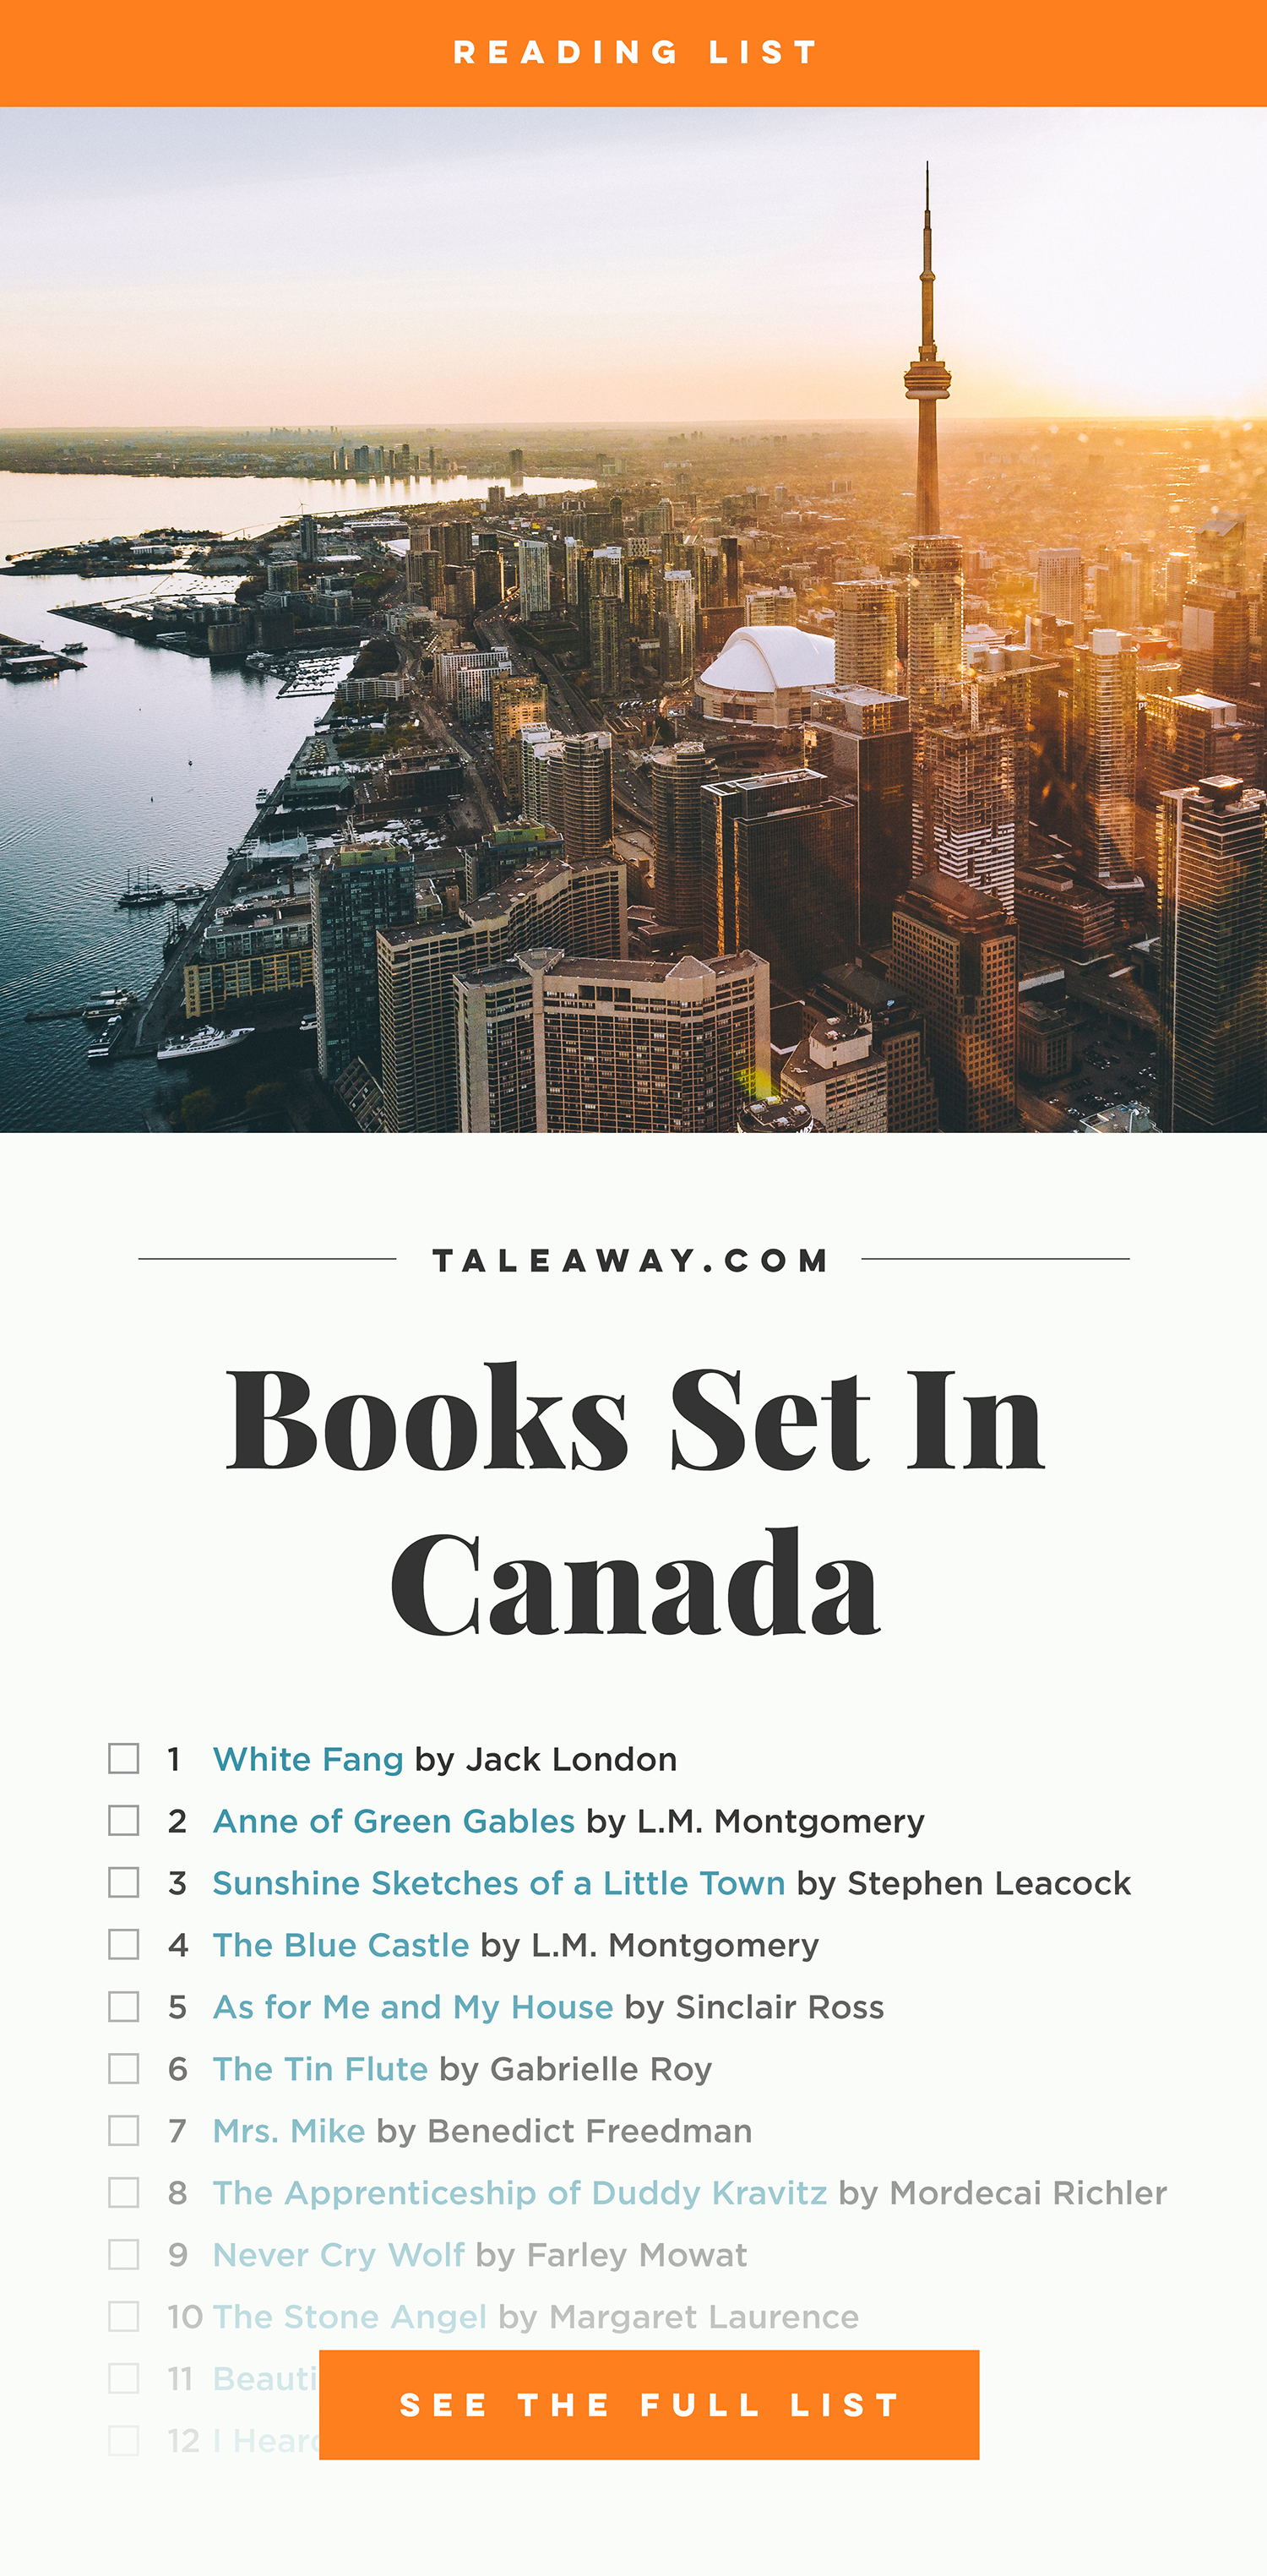 Books Set In Canada. Visit www.taleway.com to find books from around the world. canada books, canadian books, canada novels, canadian novels, best books set in canada, popular books set in canada, books about canada, books about canadian culture, canada reading challenge, canada reading list, ottawa books, toronto books, montreal books, vancouver books, canadian books to read, books to read before going to canada, novels set in canada, books to read about canada, famous canadian authors, canada packing list, books for canada, canada travel, romance books set in canada, mystery books set in canada, historical fiction set in canada, canada travel books